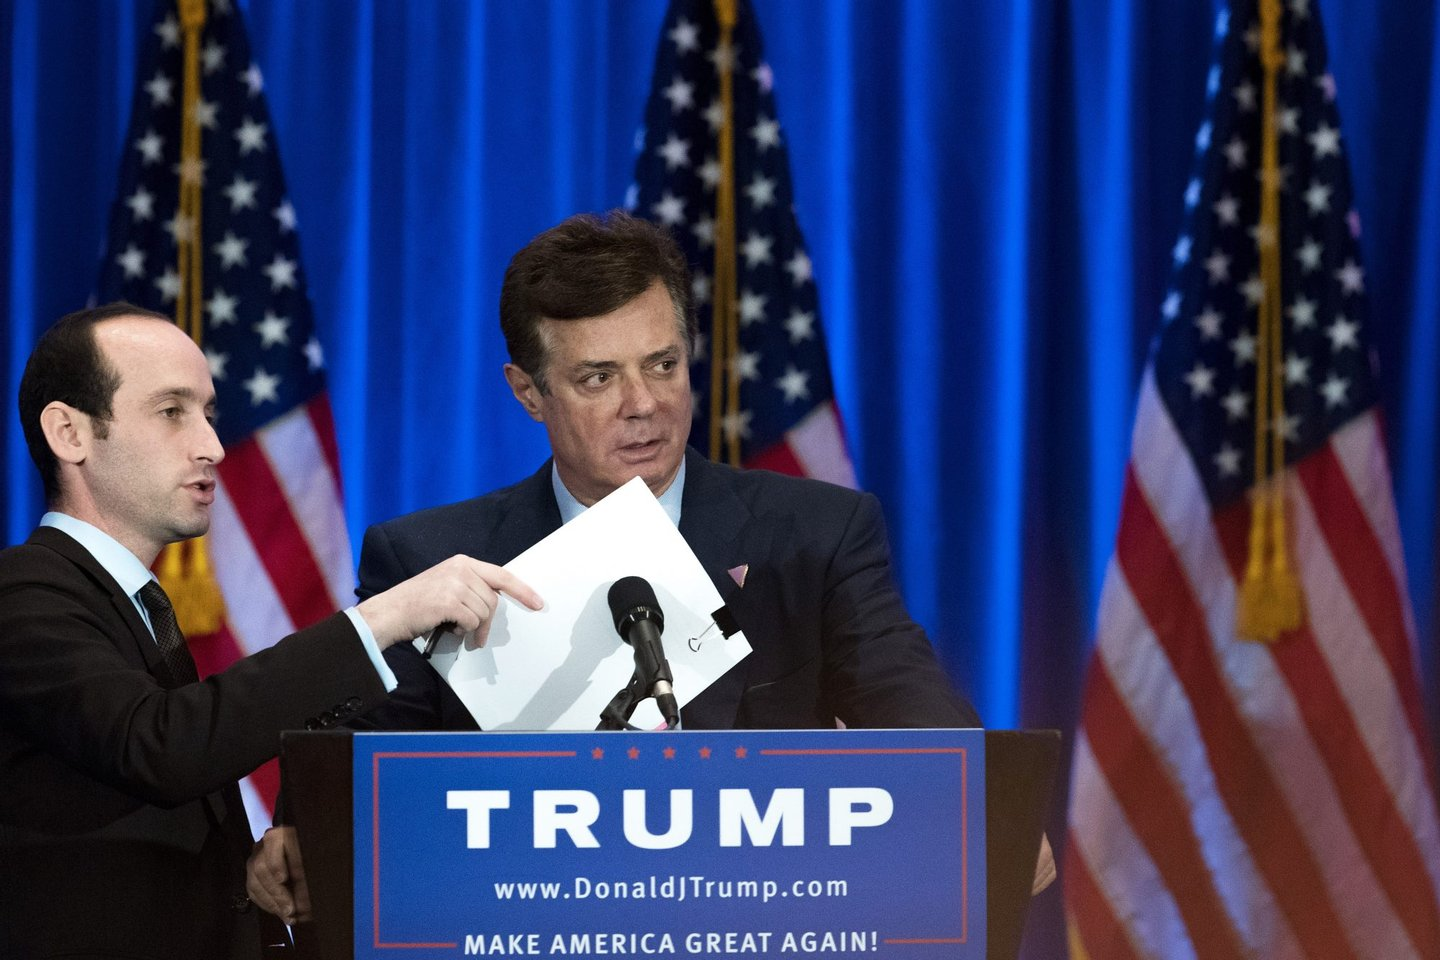 NEW YORK, NY - JUNE 22: Campaign chairman Paul Manafort checks the podium before Republican Presidential candidate Donald Trump speaks during an event at Trump SoHo Hotel, June 22, 2016 in New York City. Trump's remarks focused on criticisms of Democratic presidential candidate Hillary Clinton. (Photo by Drew Angerer/Getty Images)